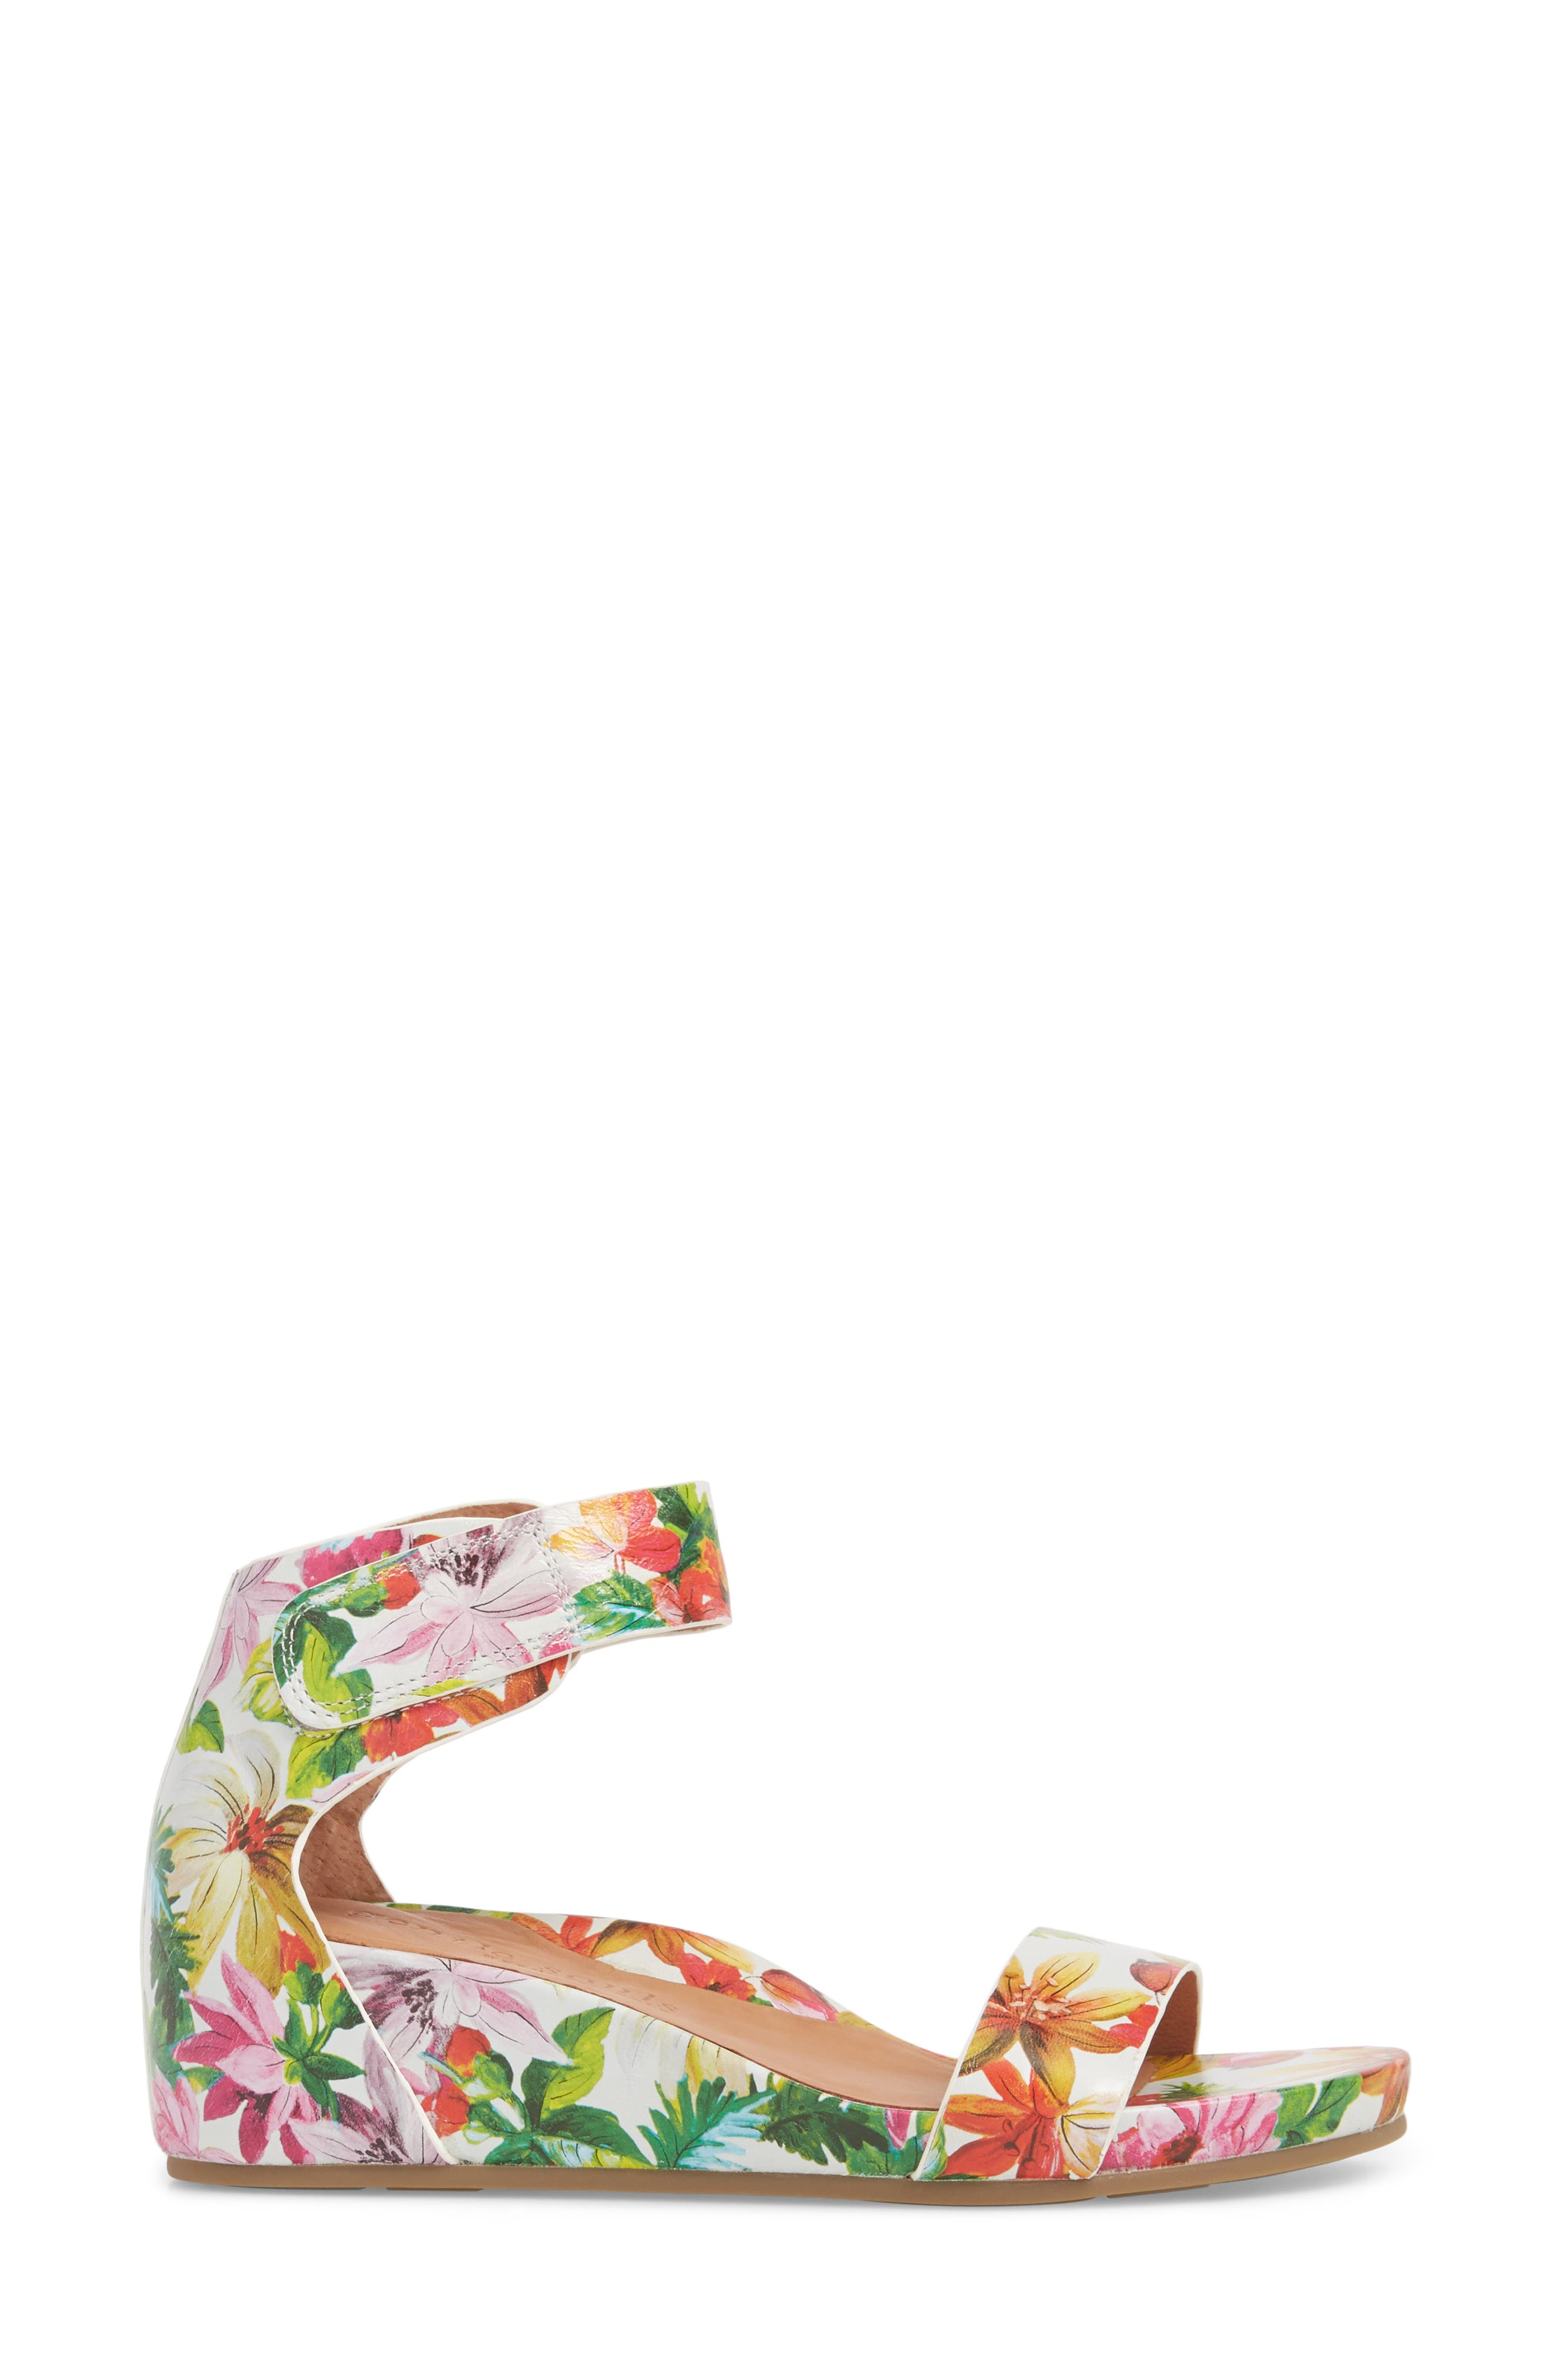 Gentle Souls by Kenneth Cole Gianna Wedge Sandal,                             Alternate thumbnail 3, color,                             PALM PRINTED LEATHER